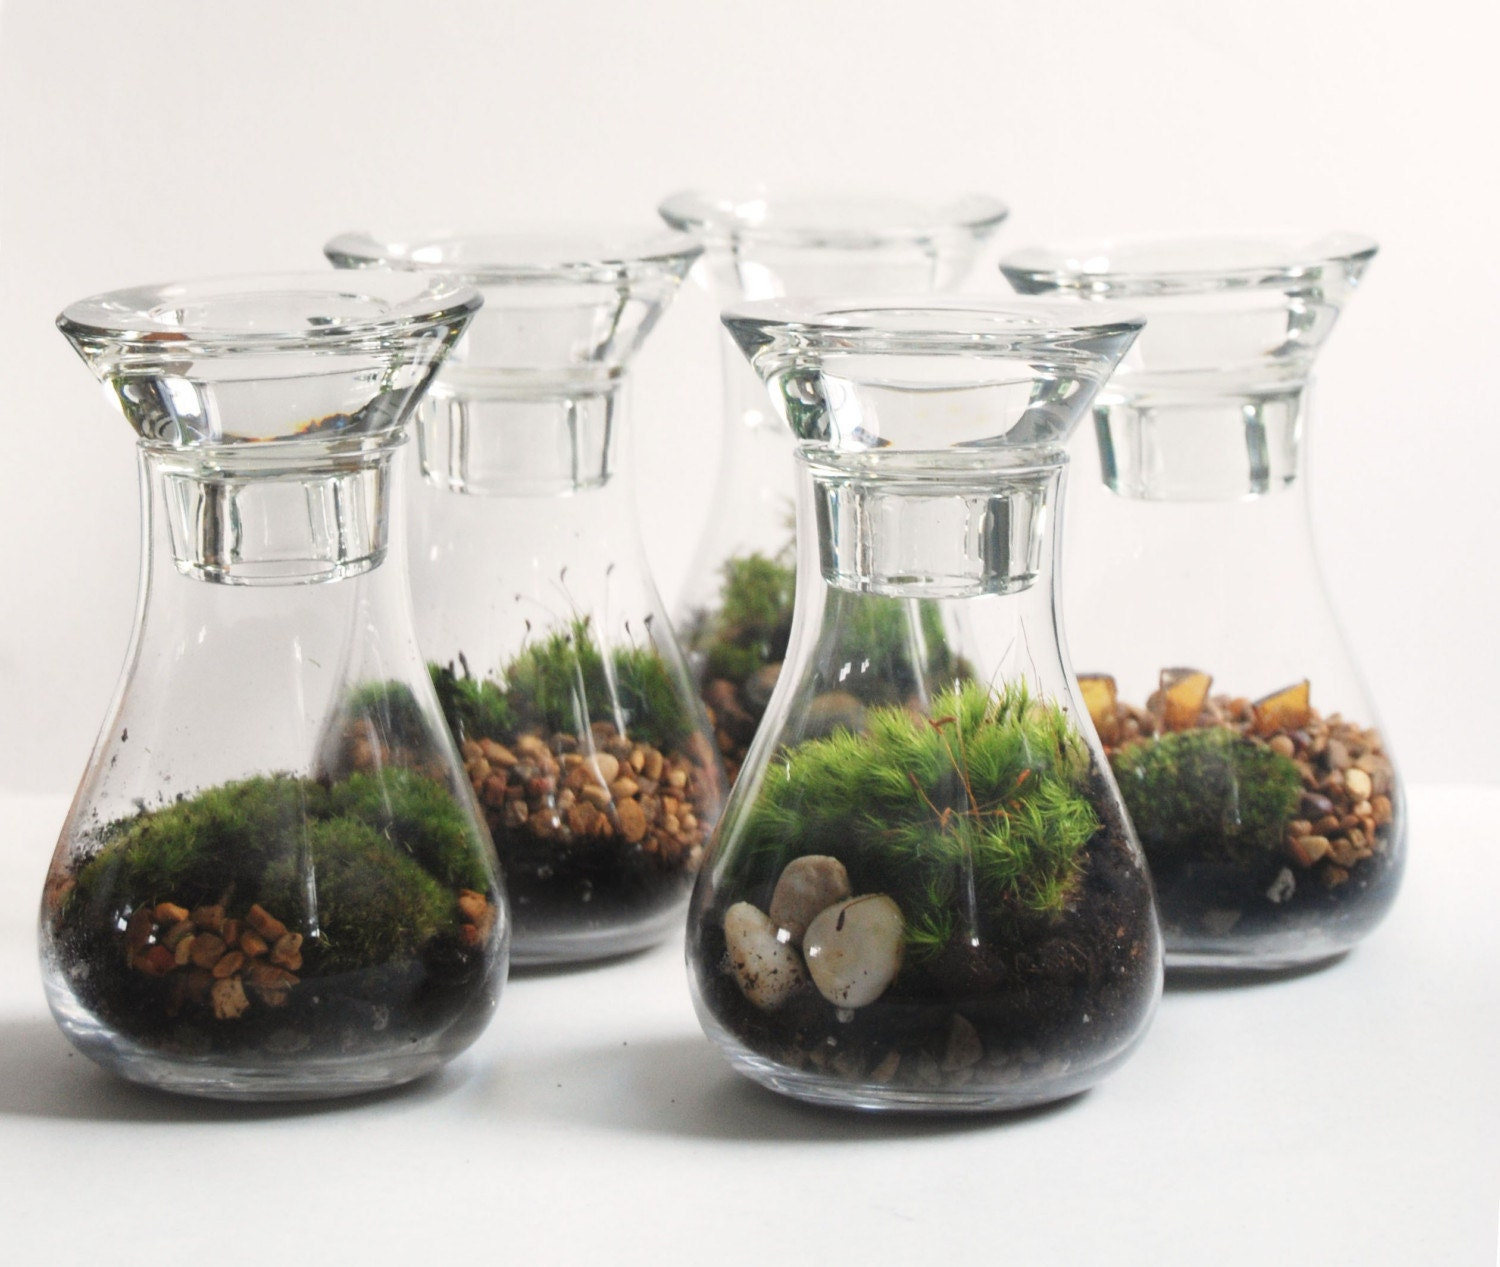 Live Moss Weddings Terrarium Available By Custom Order and Available Southeast Michigan/Toledo Area Only